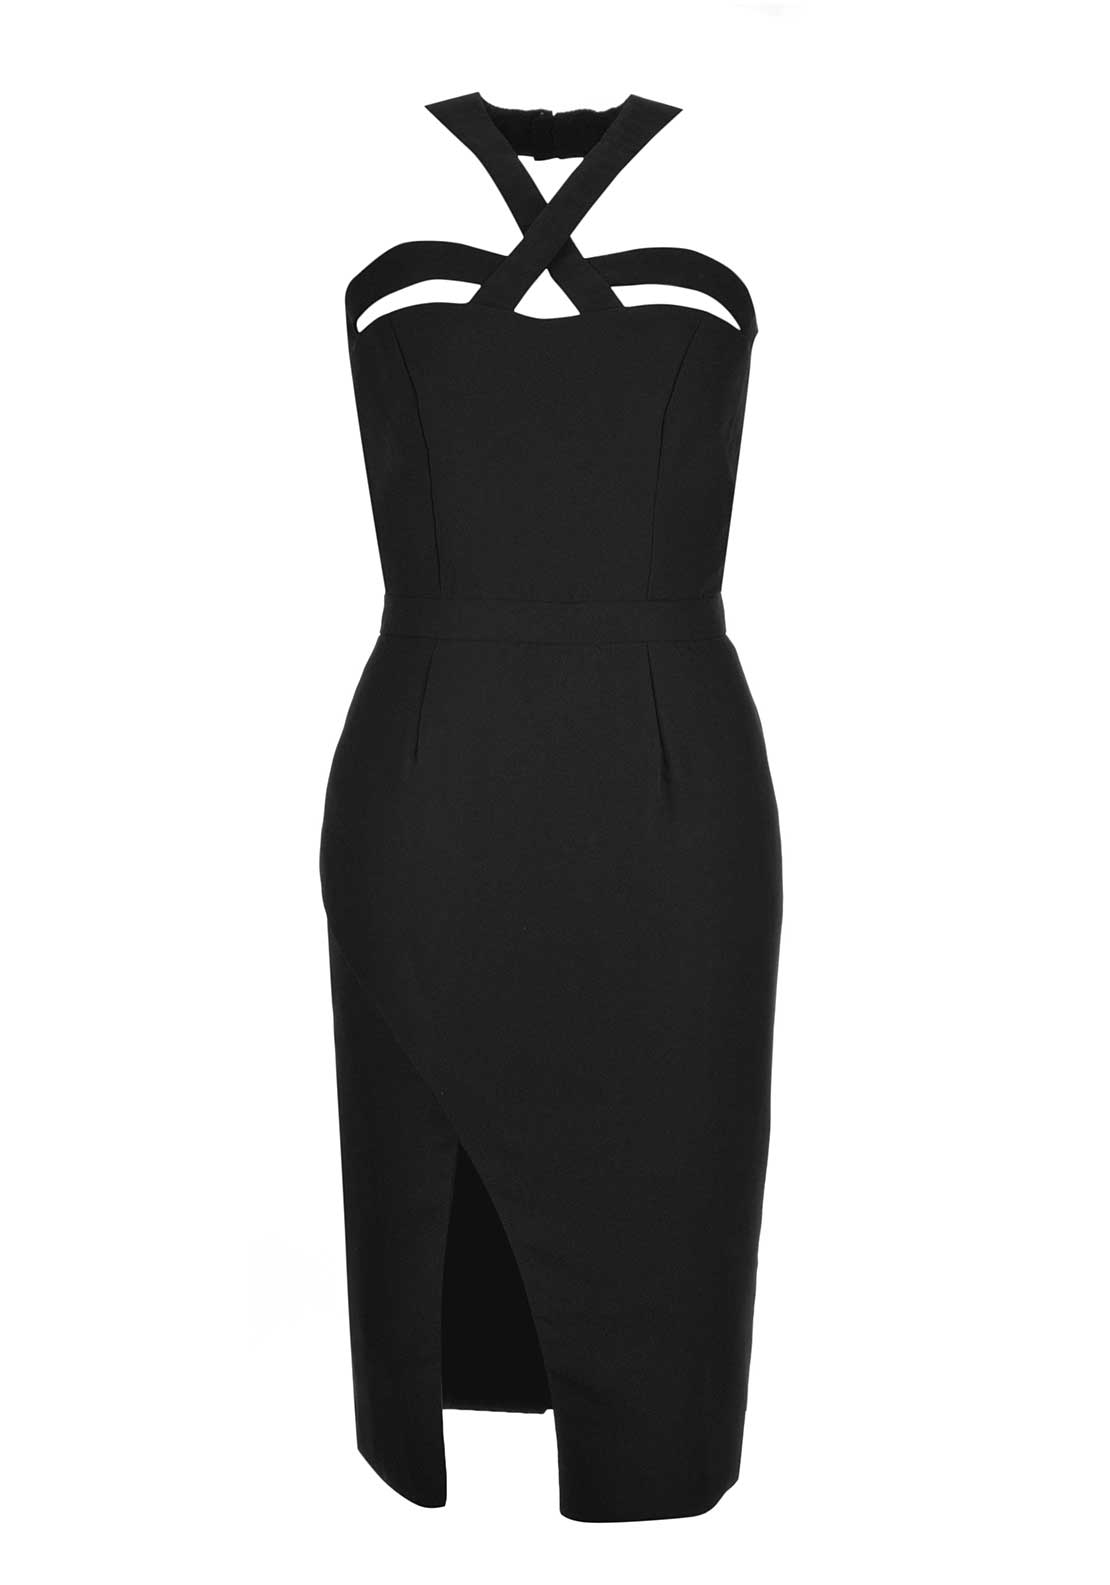 VLabel London Tooley Cut out Dress with Slit, Black